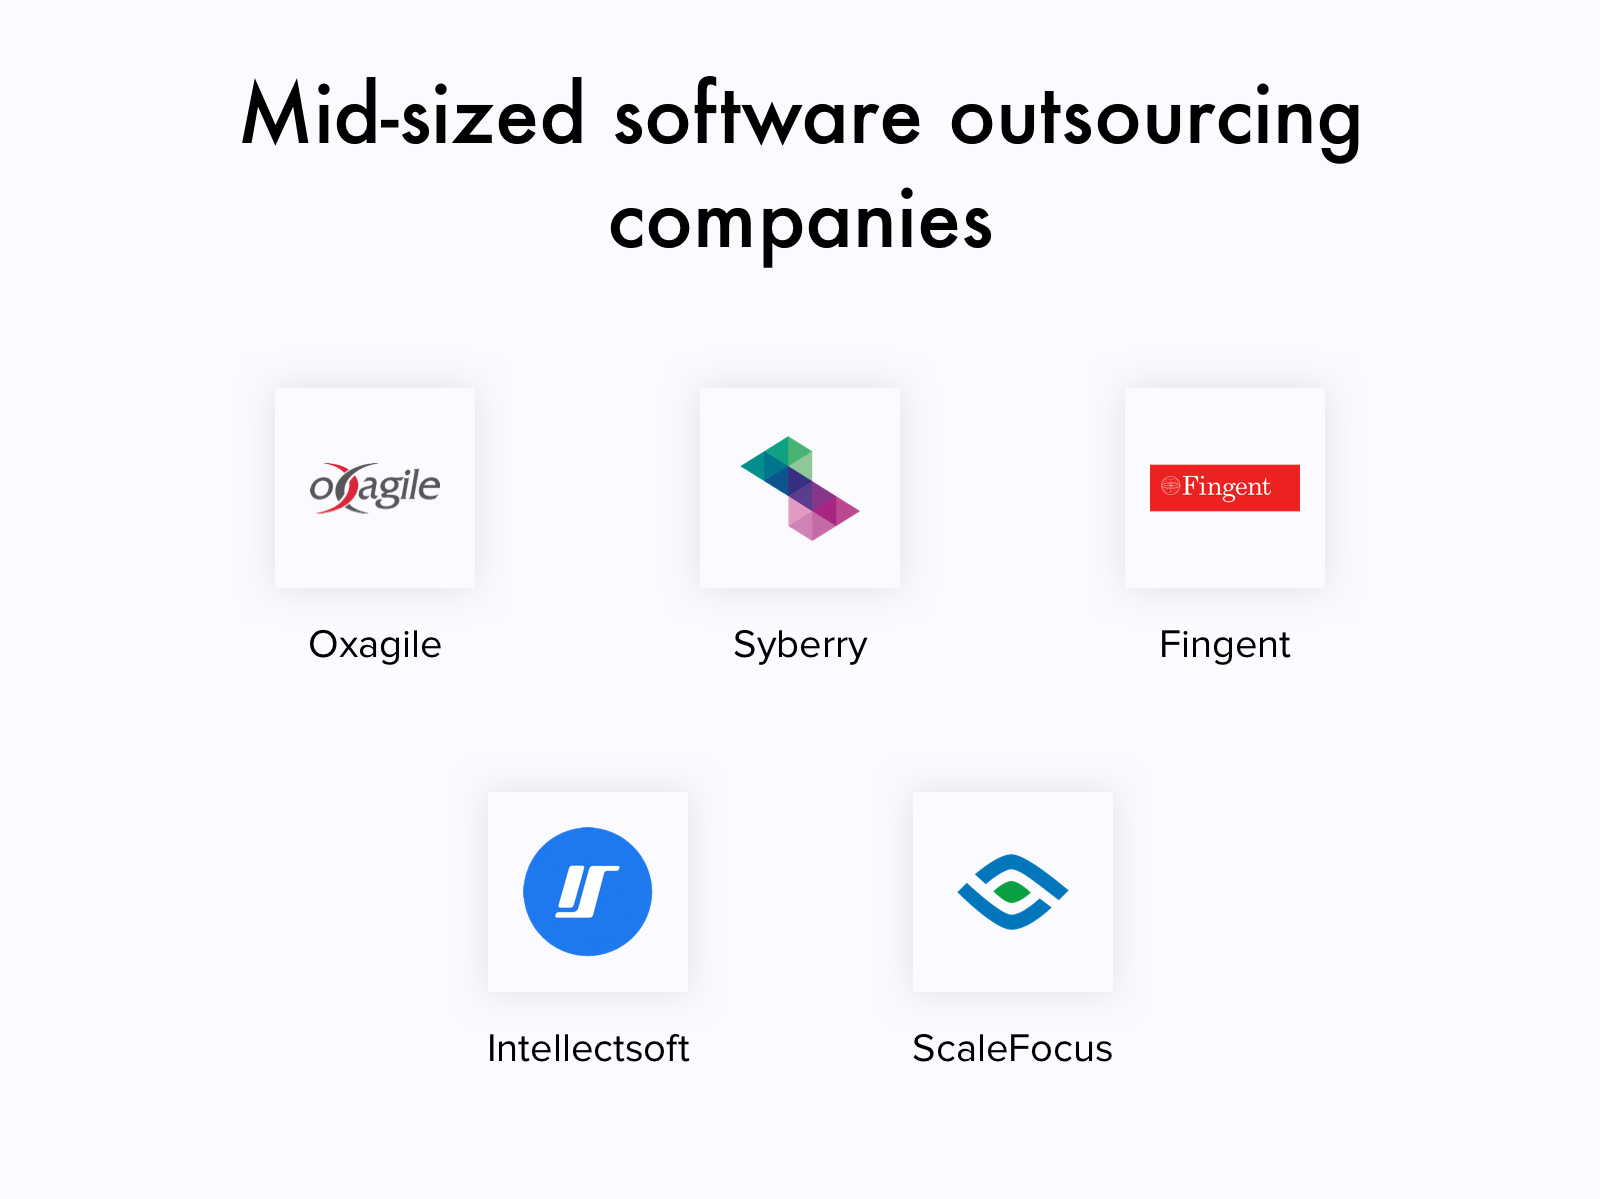 Mid-sized software development companies